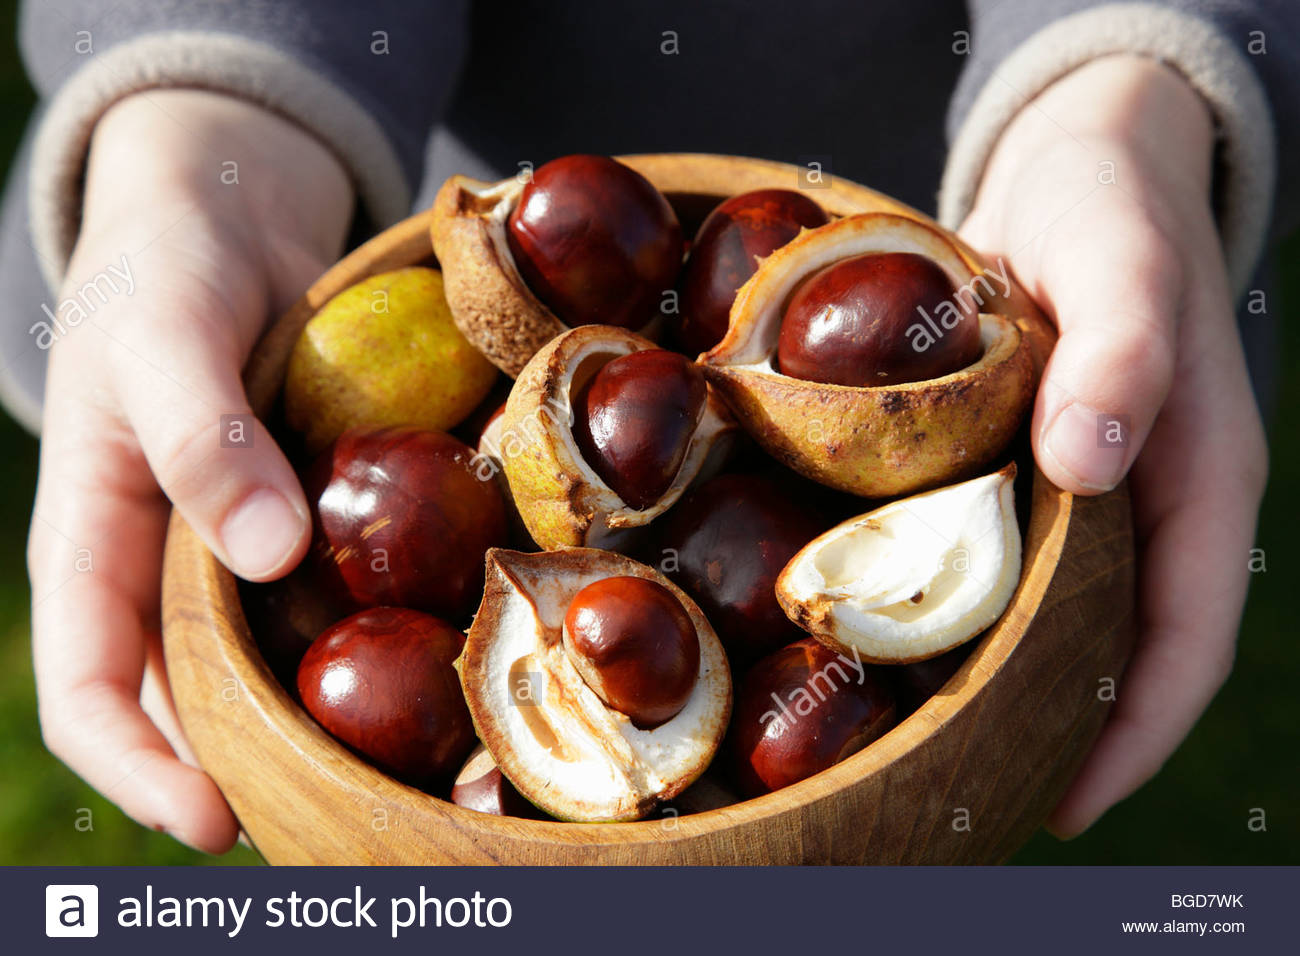 A boy holding a dish of conkers collected in Scotland, UK - Stock Image